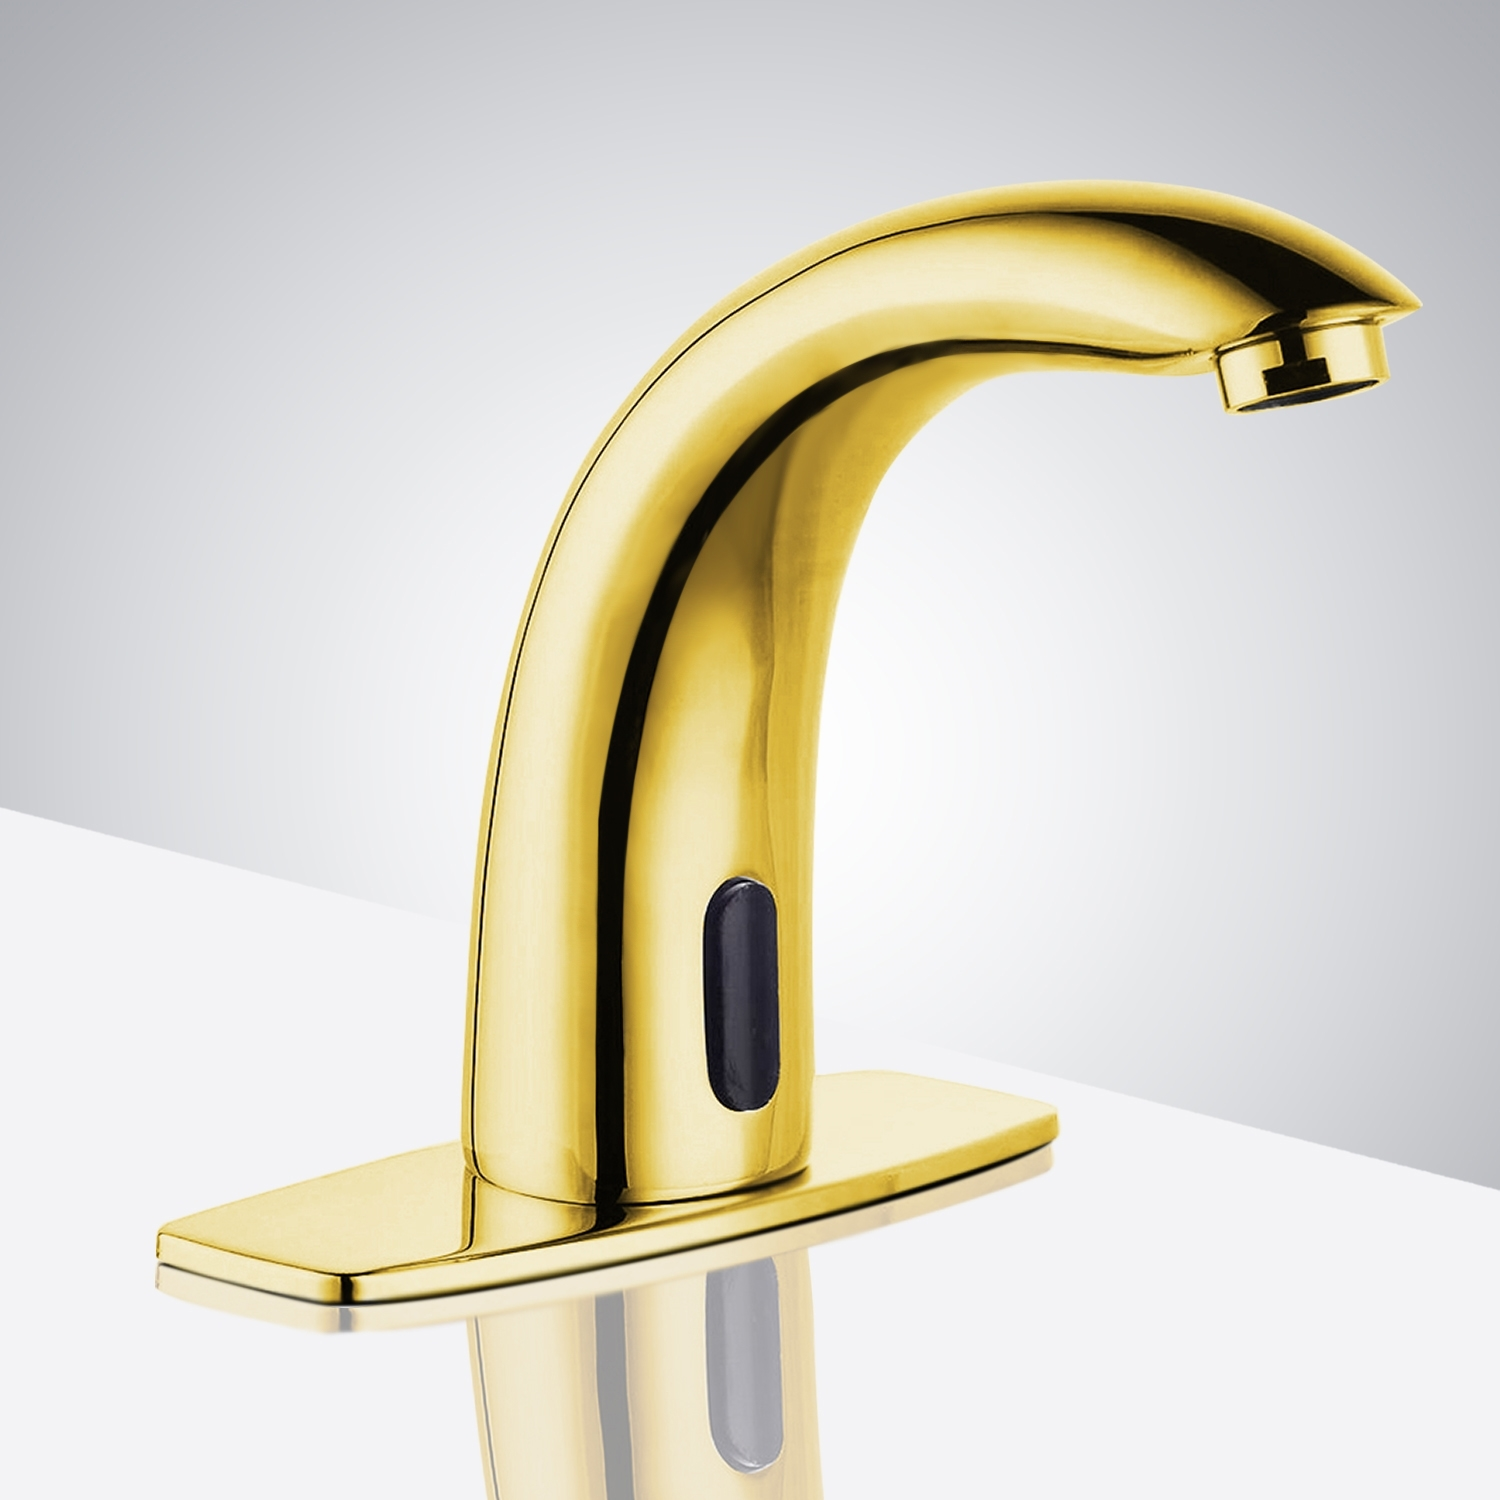 Buy Lenox Gold Tone Finish Sensor Faucet Online. Bathselect Accessories